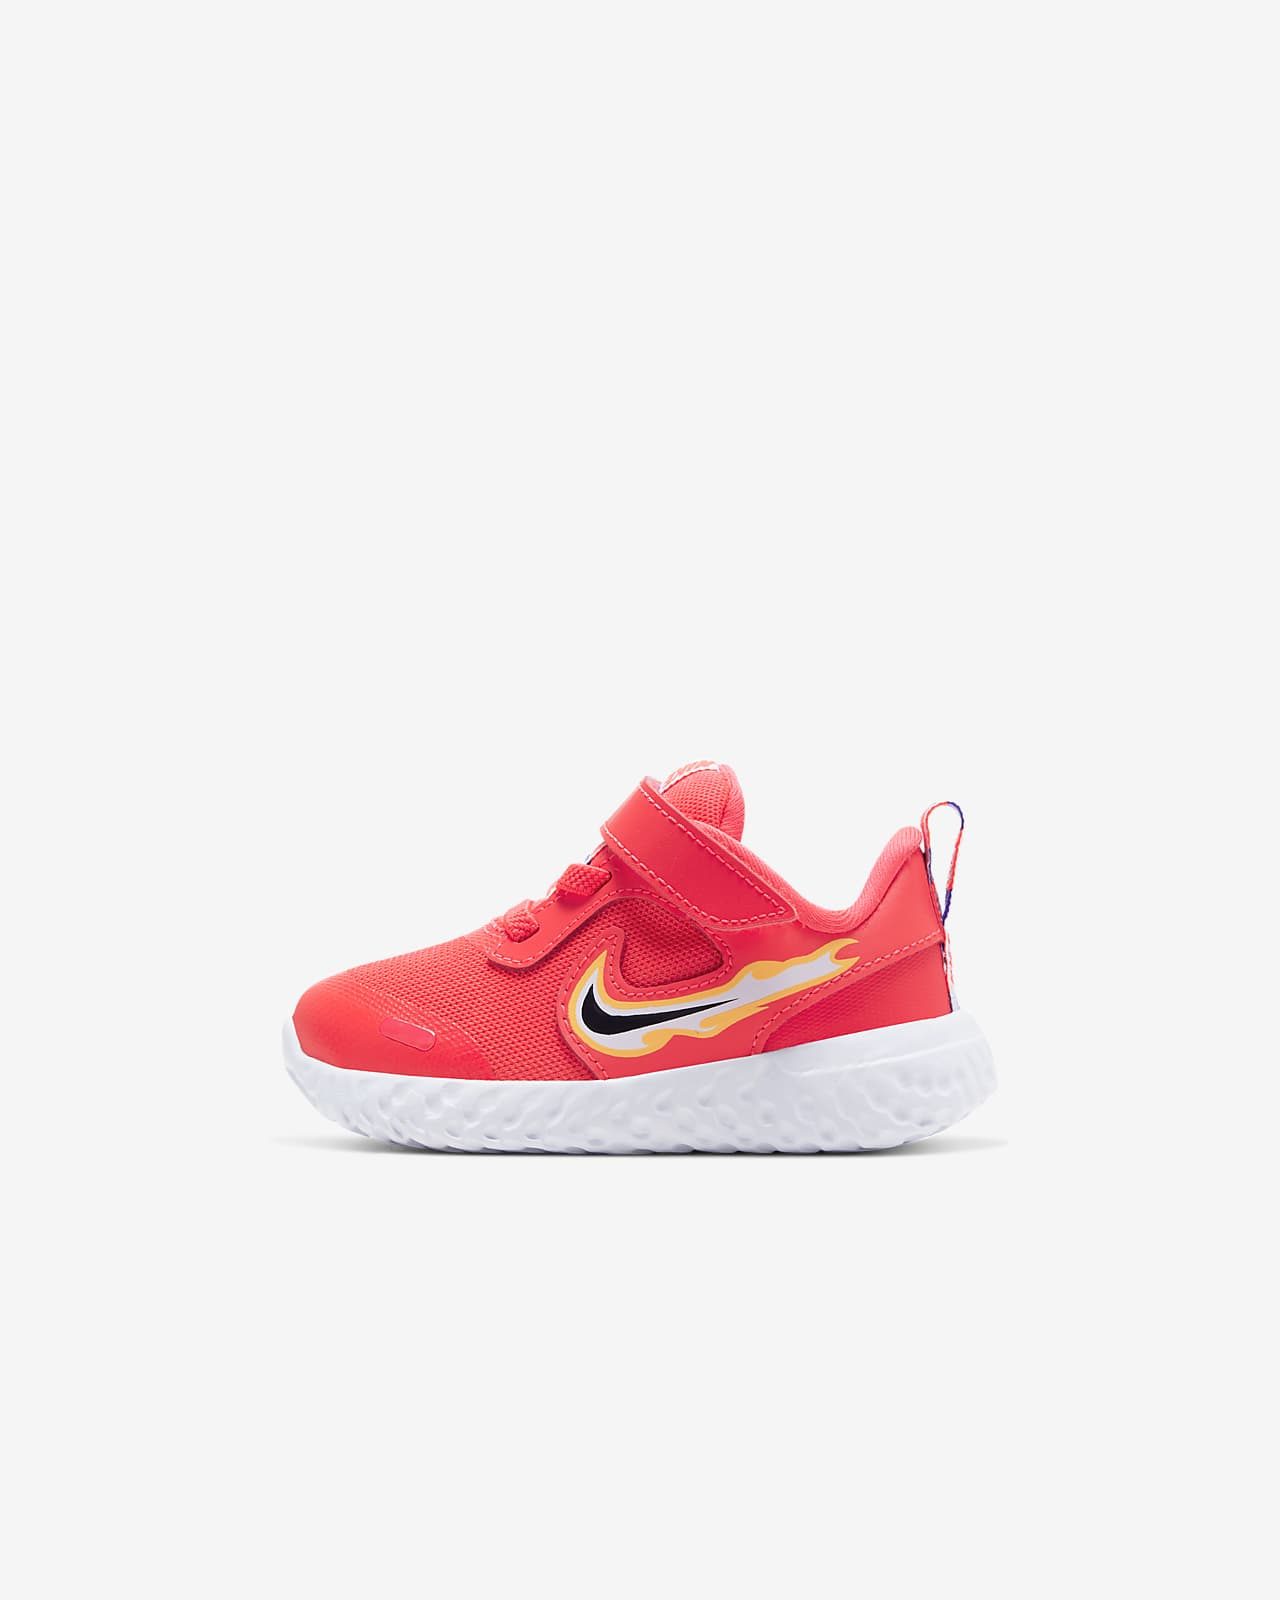 Nike Revolution 5 Fire Baby and Toddler Shoe